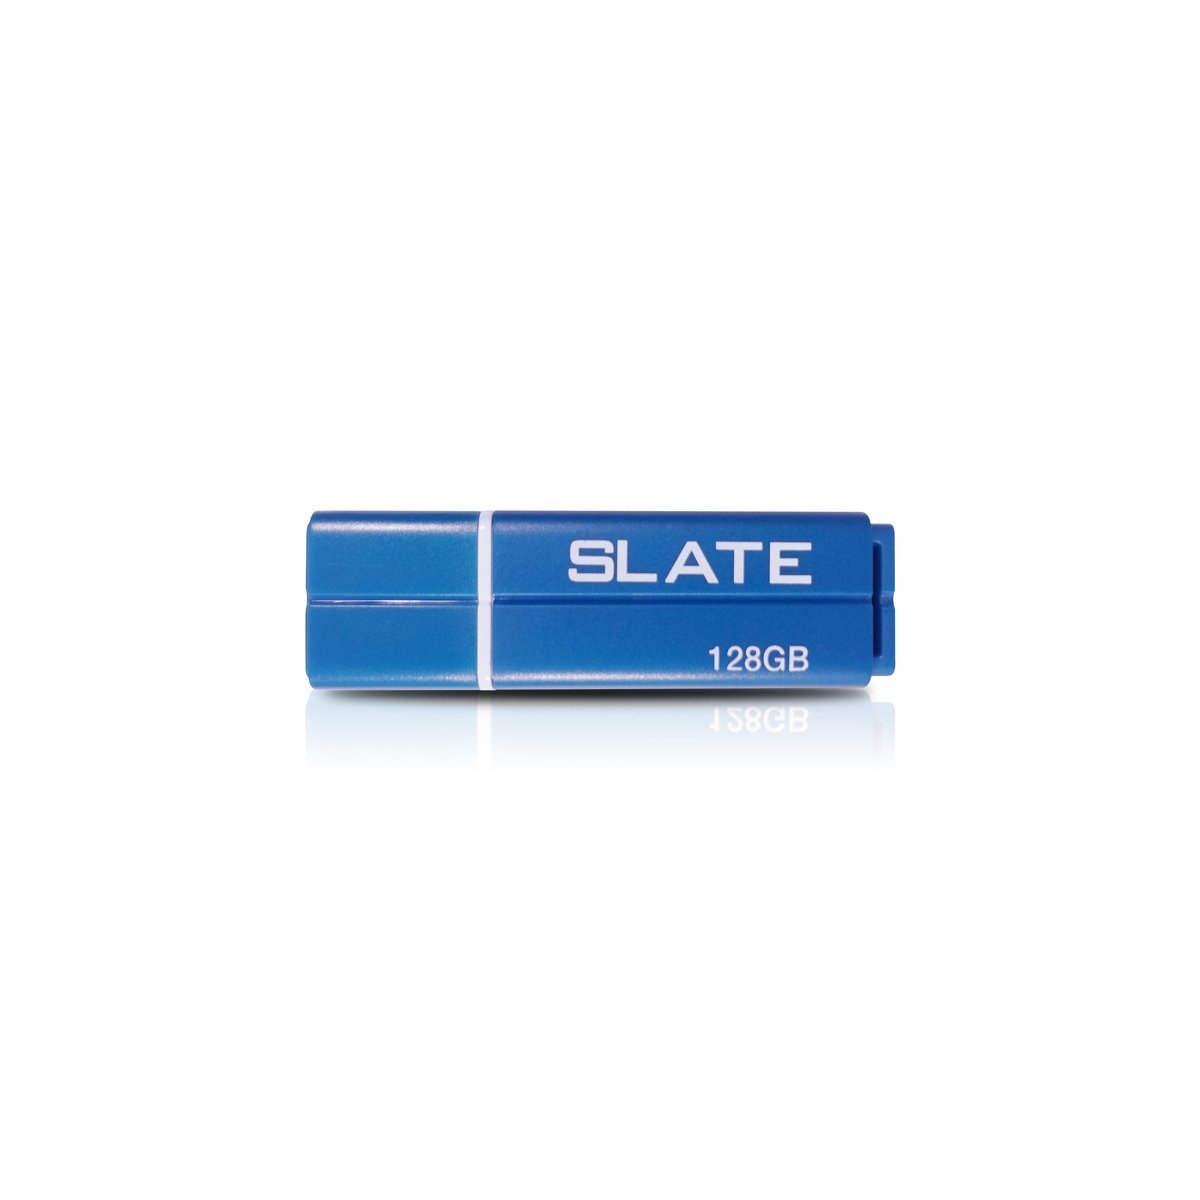 Flashdrive Patriot Slate 128GB USB3, Blue, Sleek ABS plastic housing USB Flash atmiņa